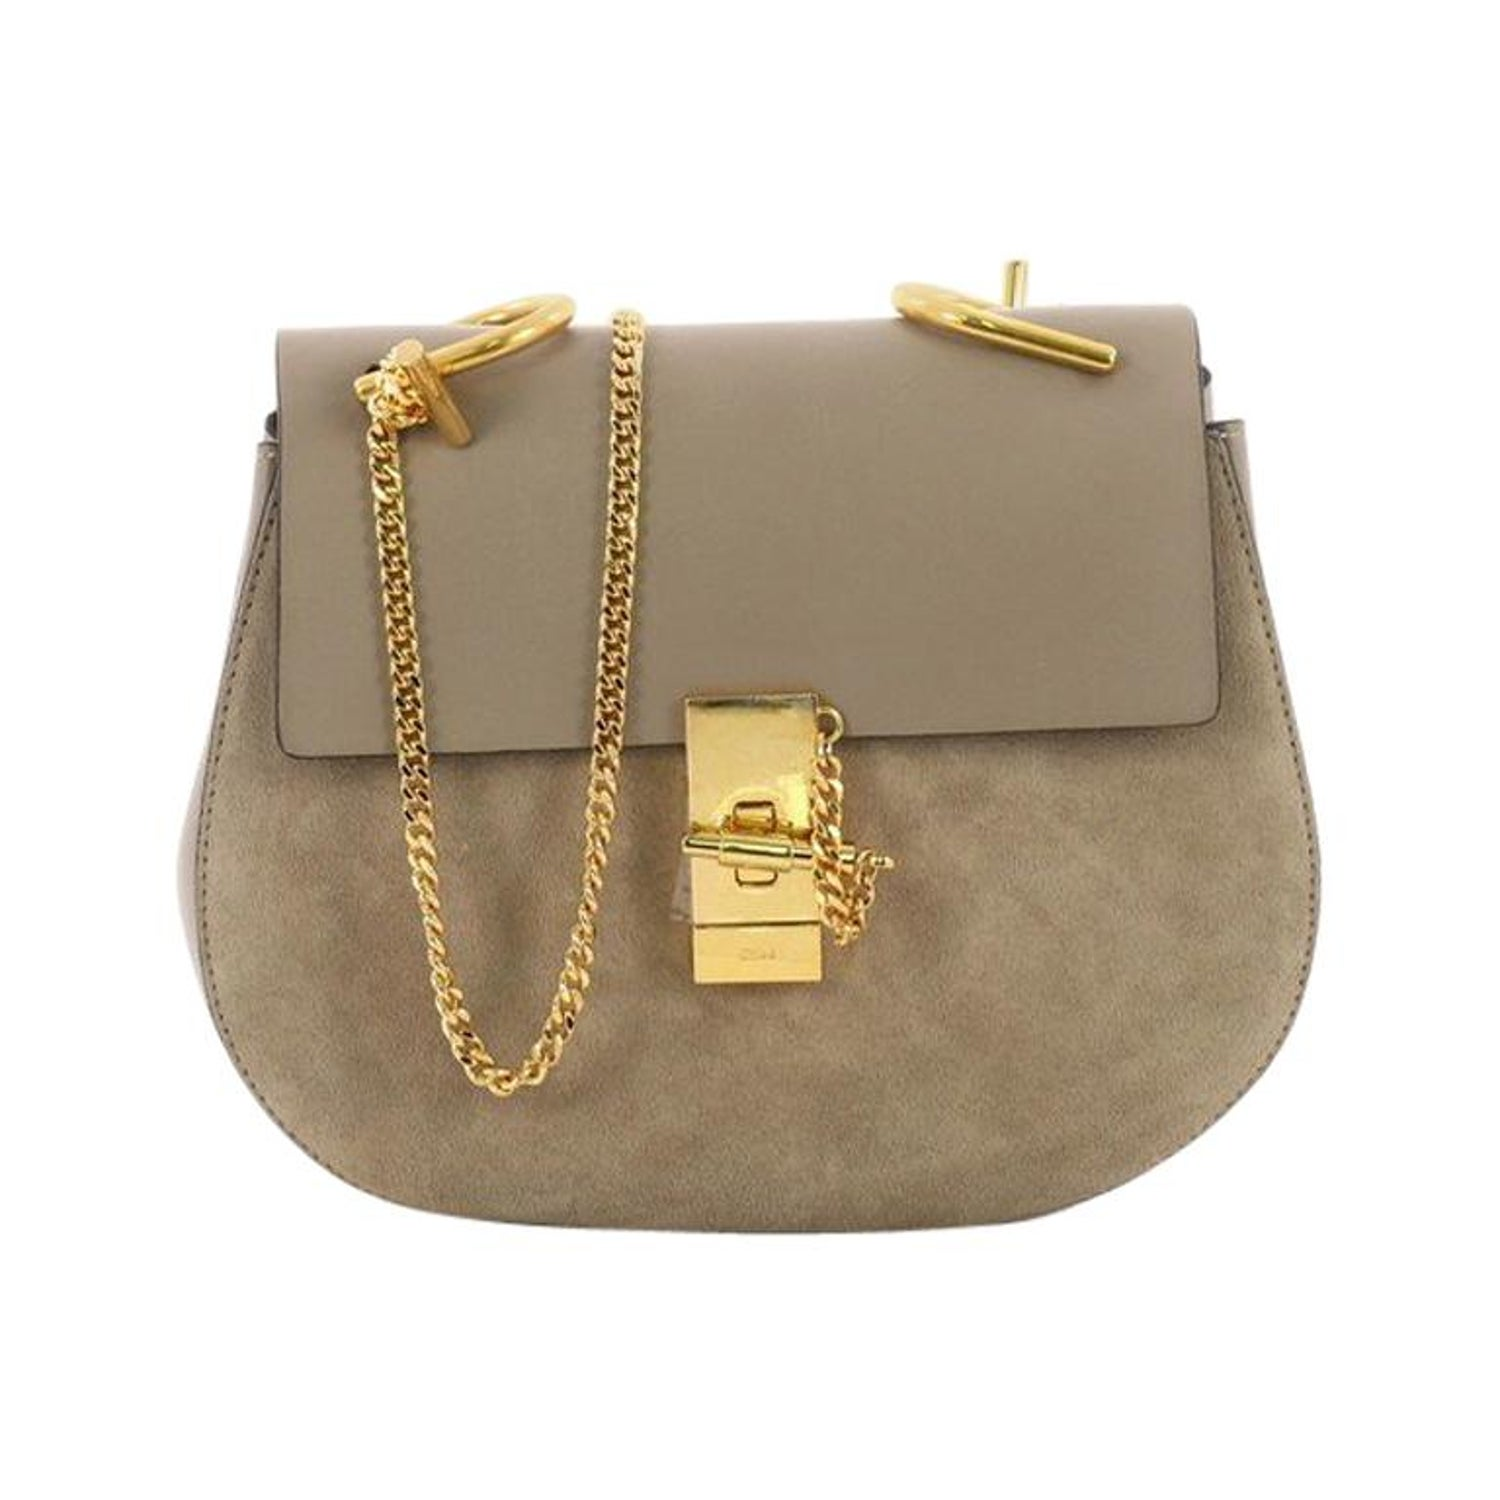 248302b8ee7c6 Chloe Drew Crossbody Bag Leather and Suede Small at 1stdibs